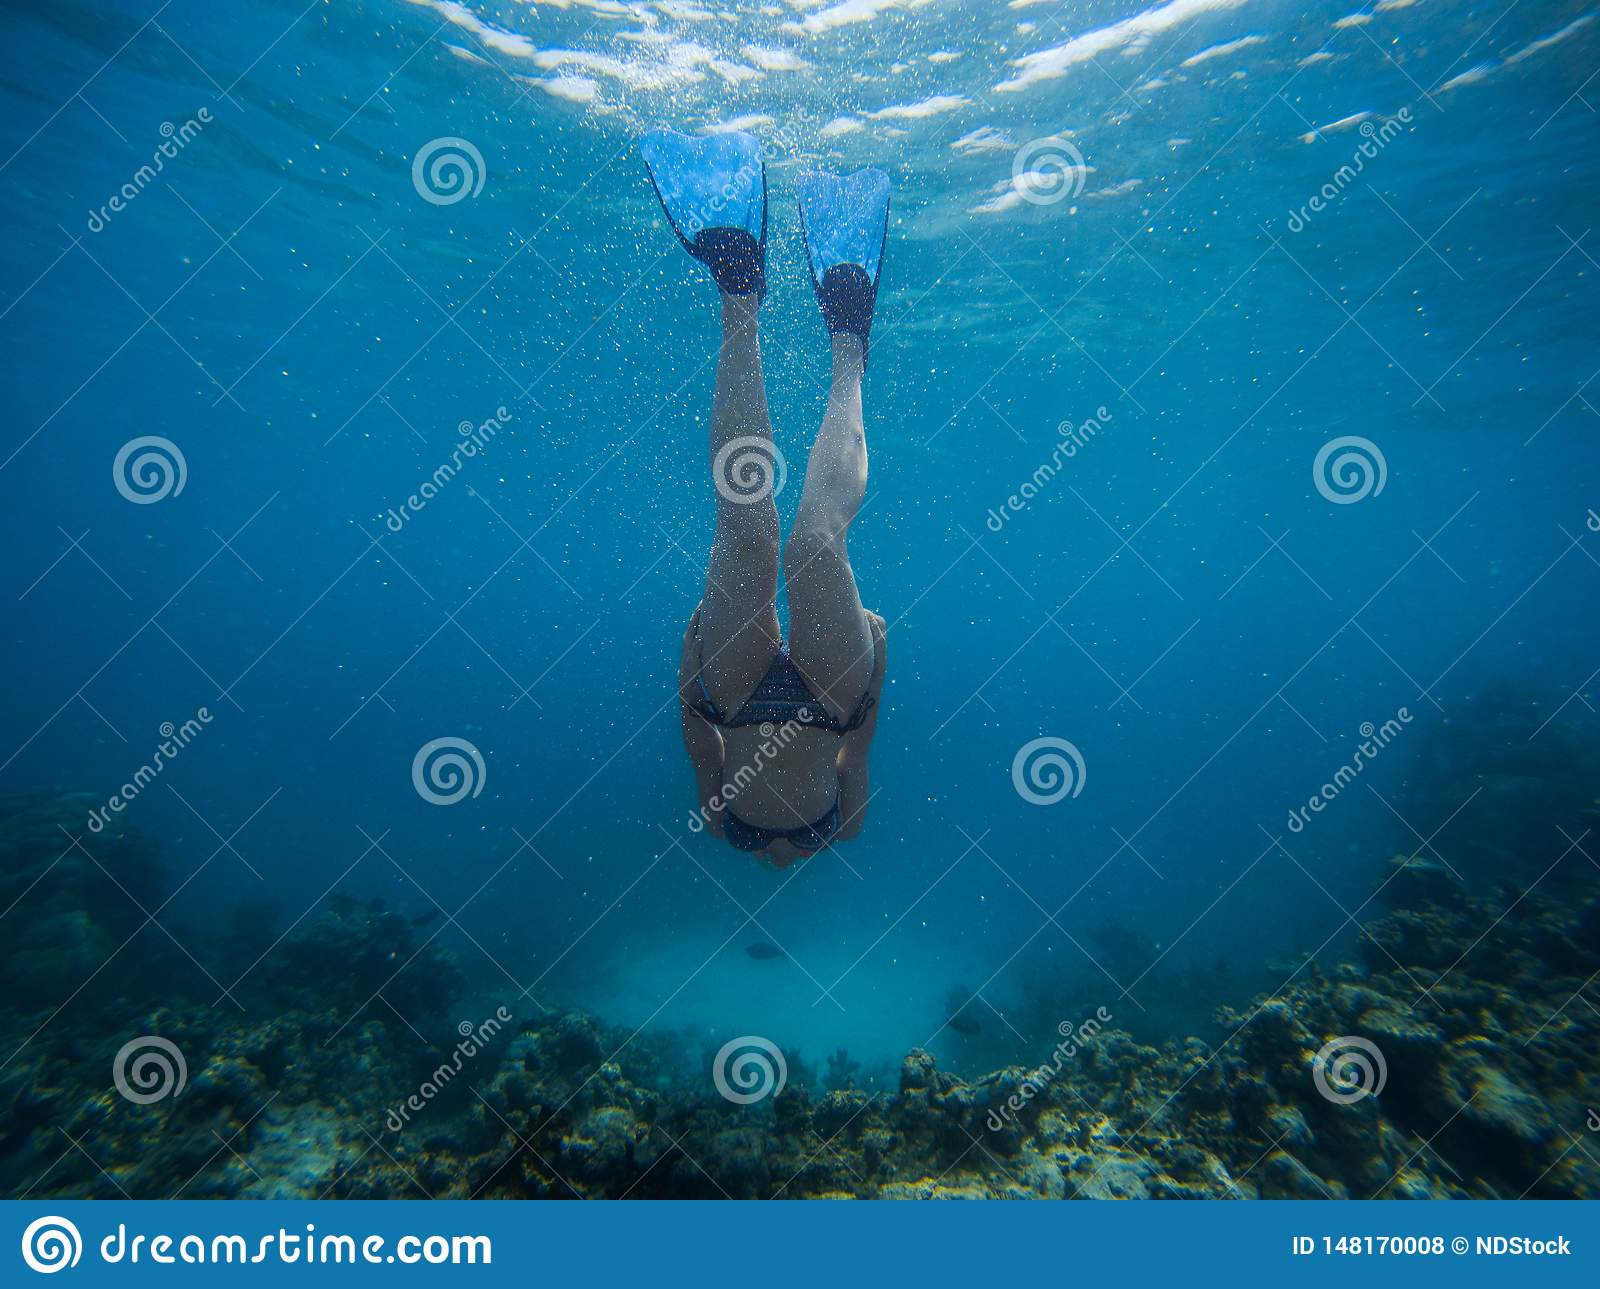 Freediver young woman swims underwater with snorkel and flippers